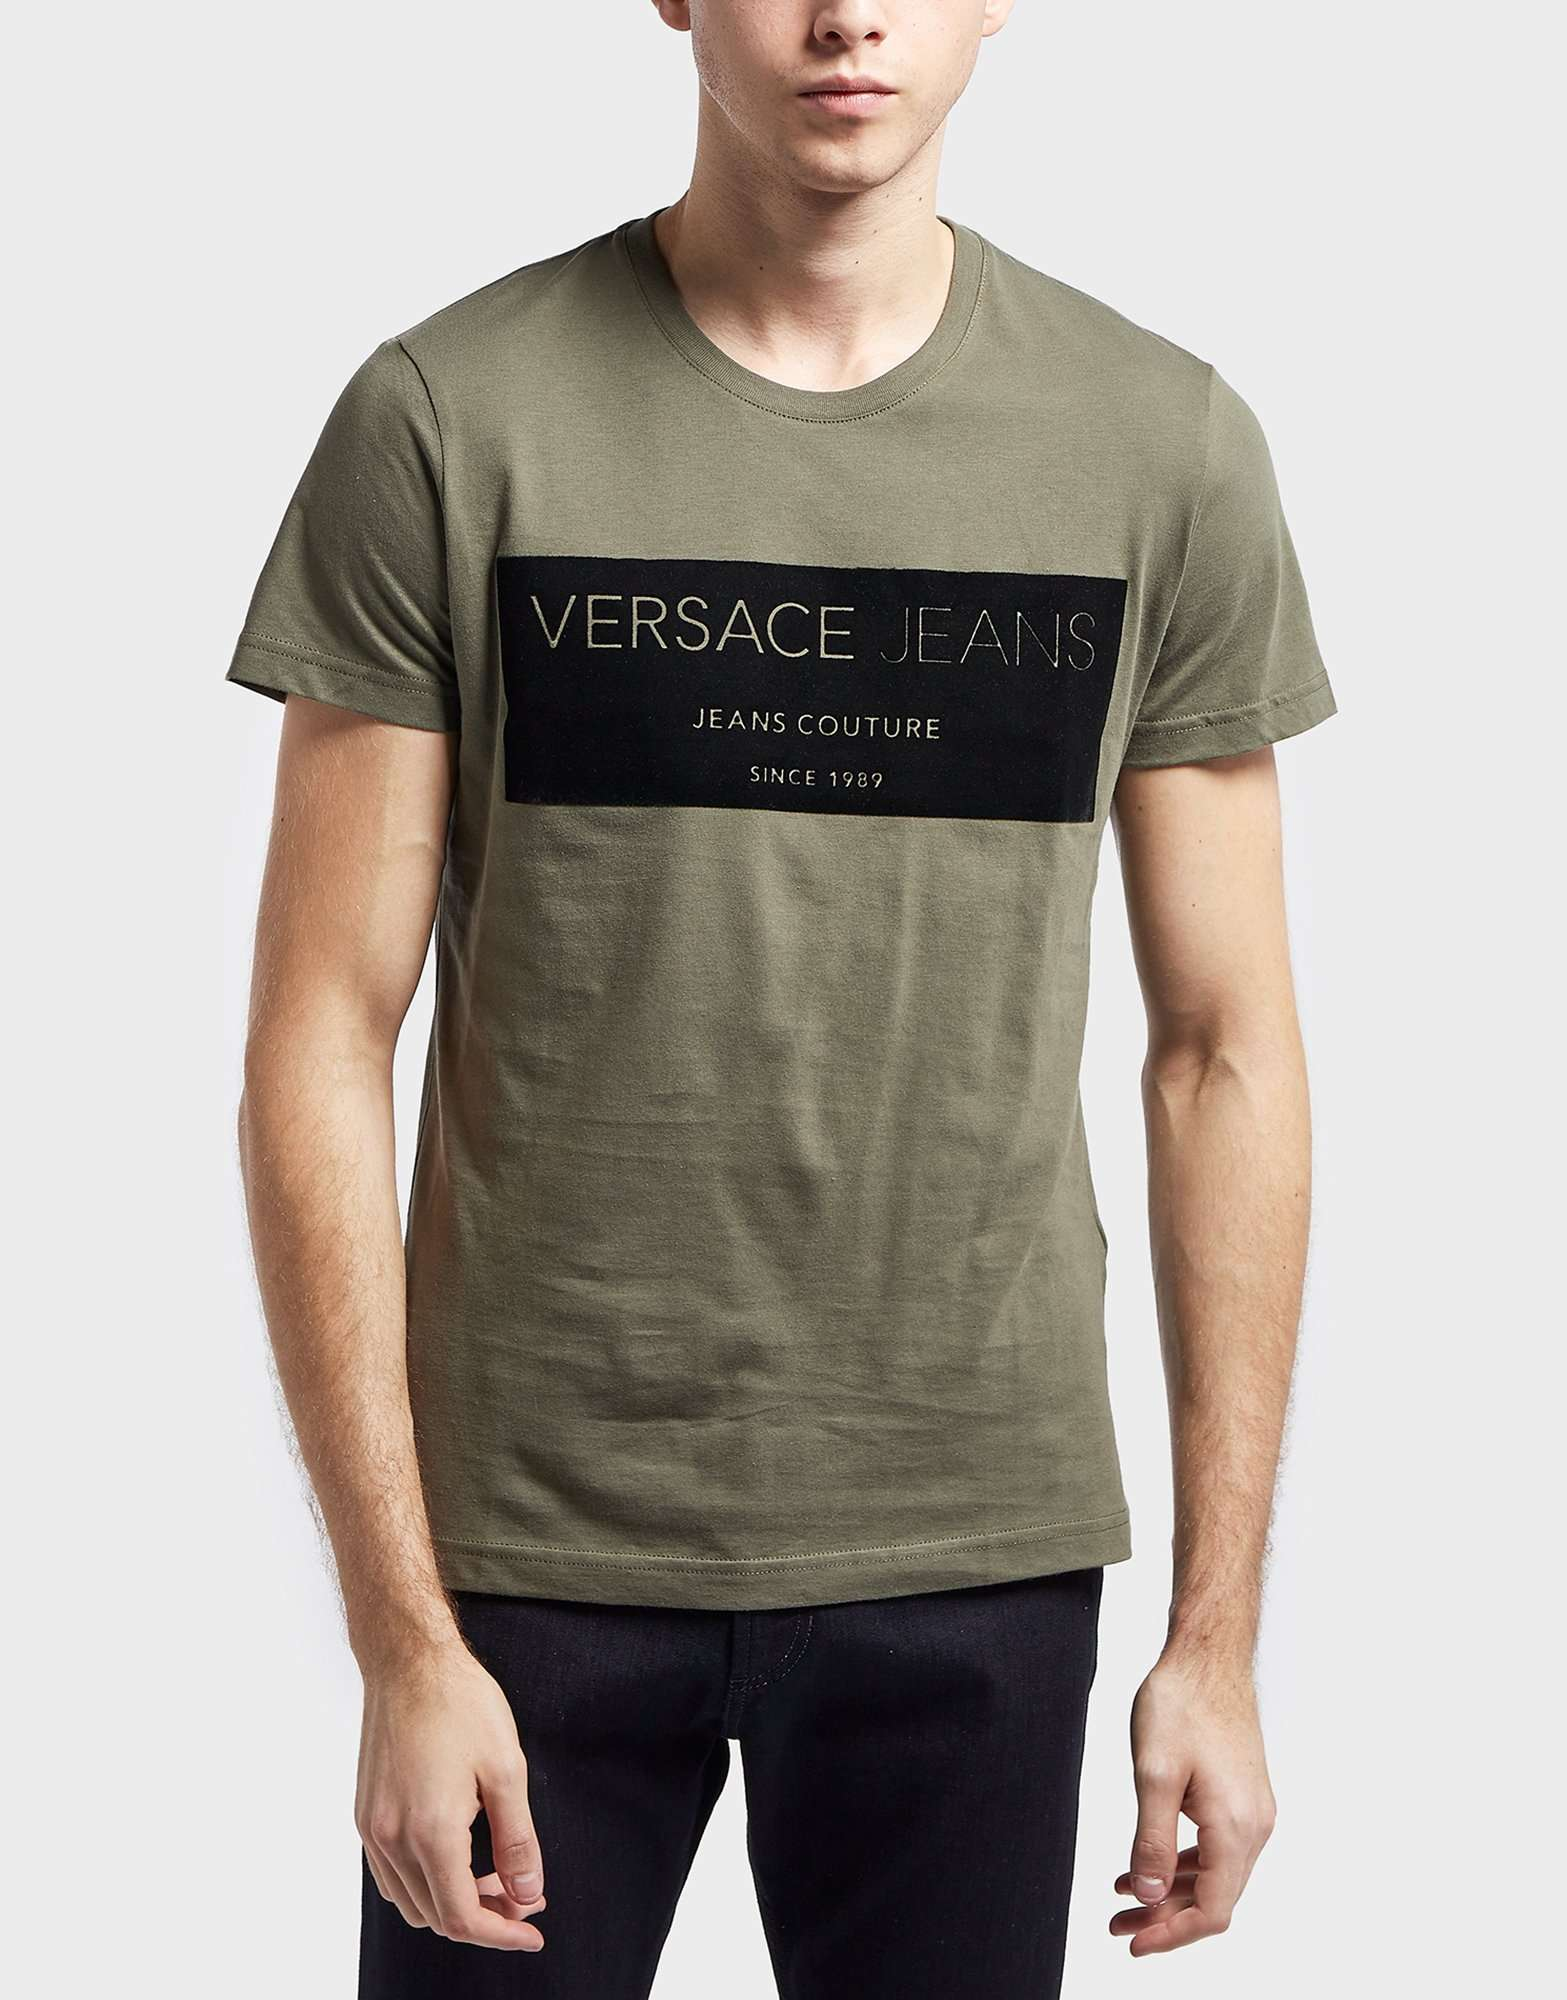 Versace Jeans Flock Square Logo Short Sleeve T-Shirt